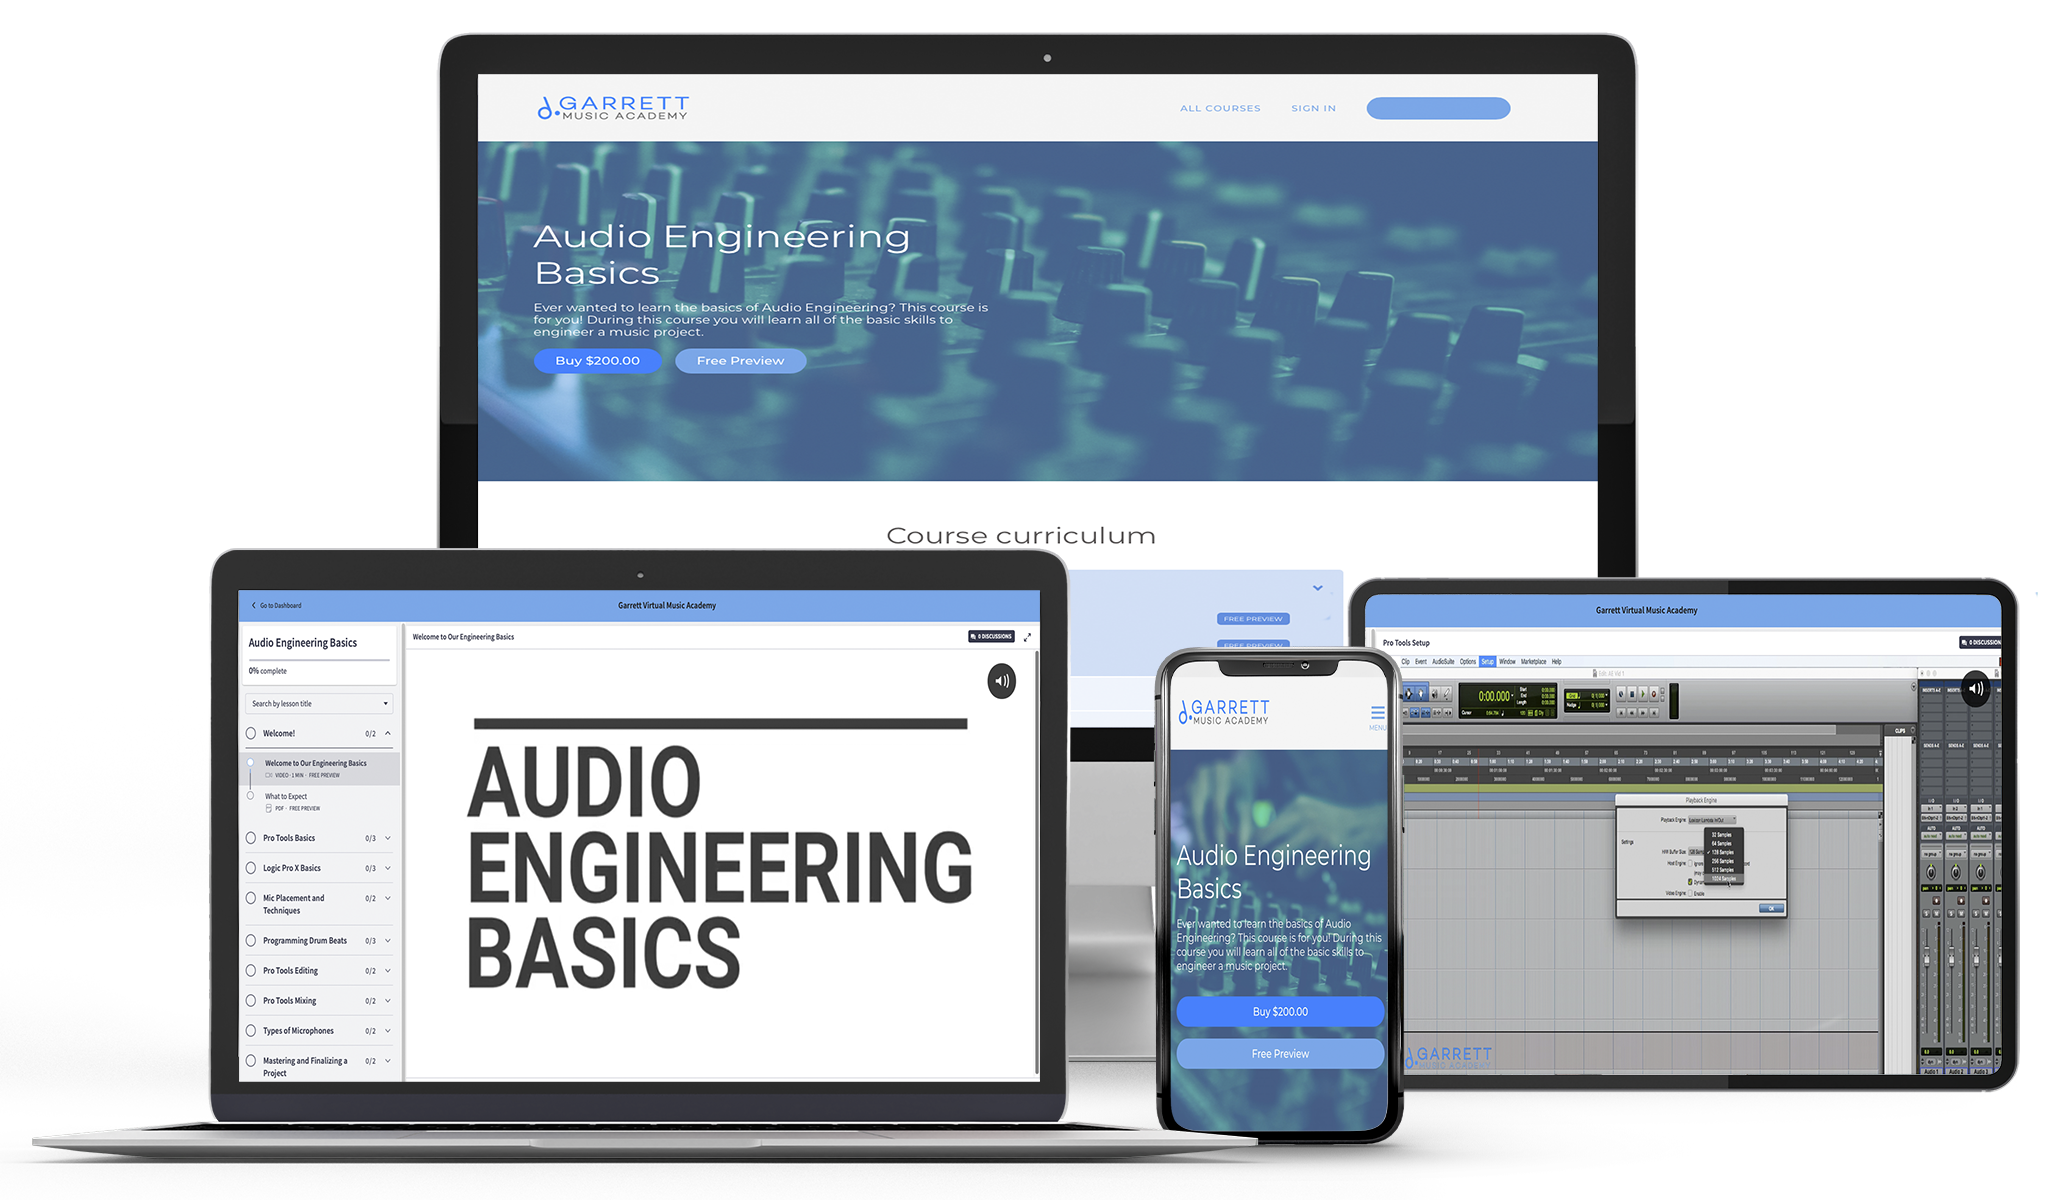 Audio Engineering Basics